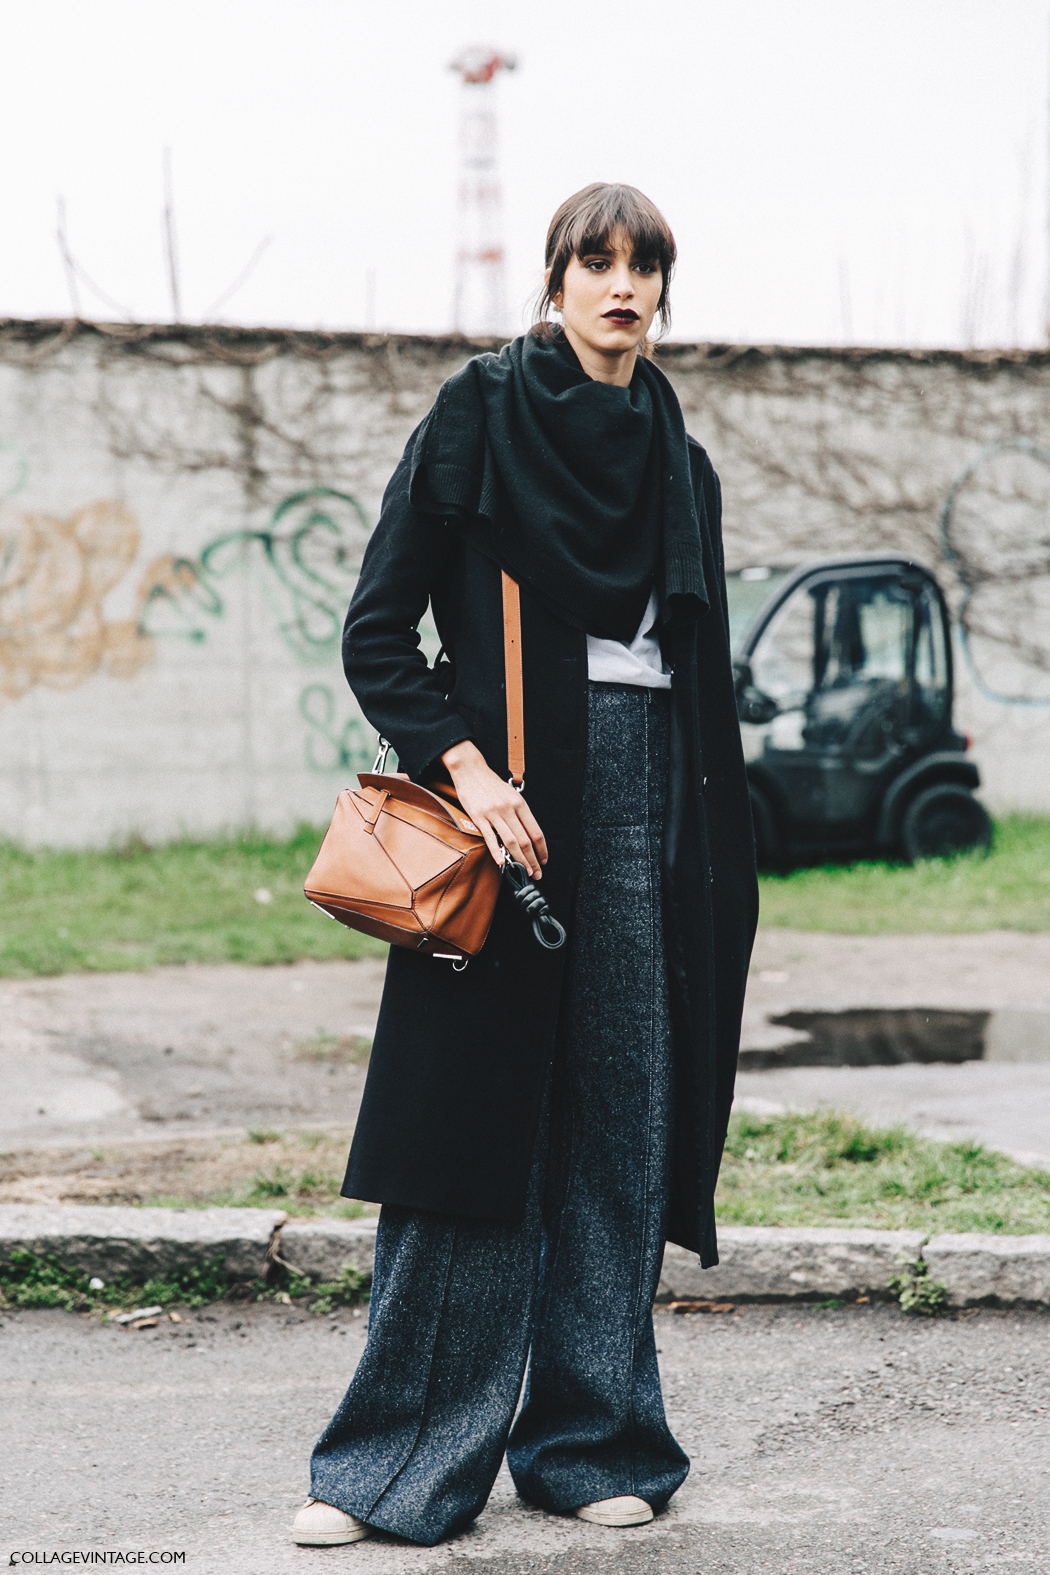 Milan_Fashion_Week_Fall_16-MFW-Street_Style-Collage_Vintage-Model-Tweed_Trousers-Loewe_Bag.